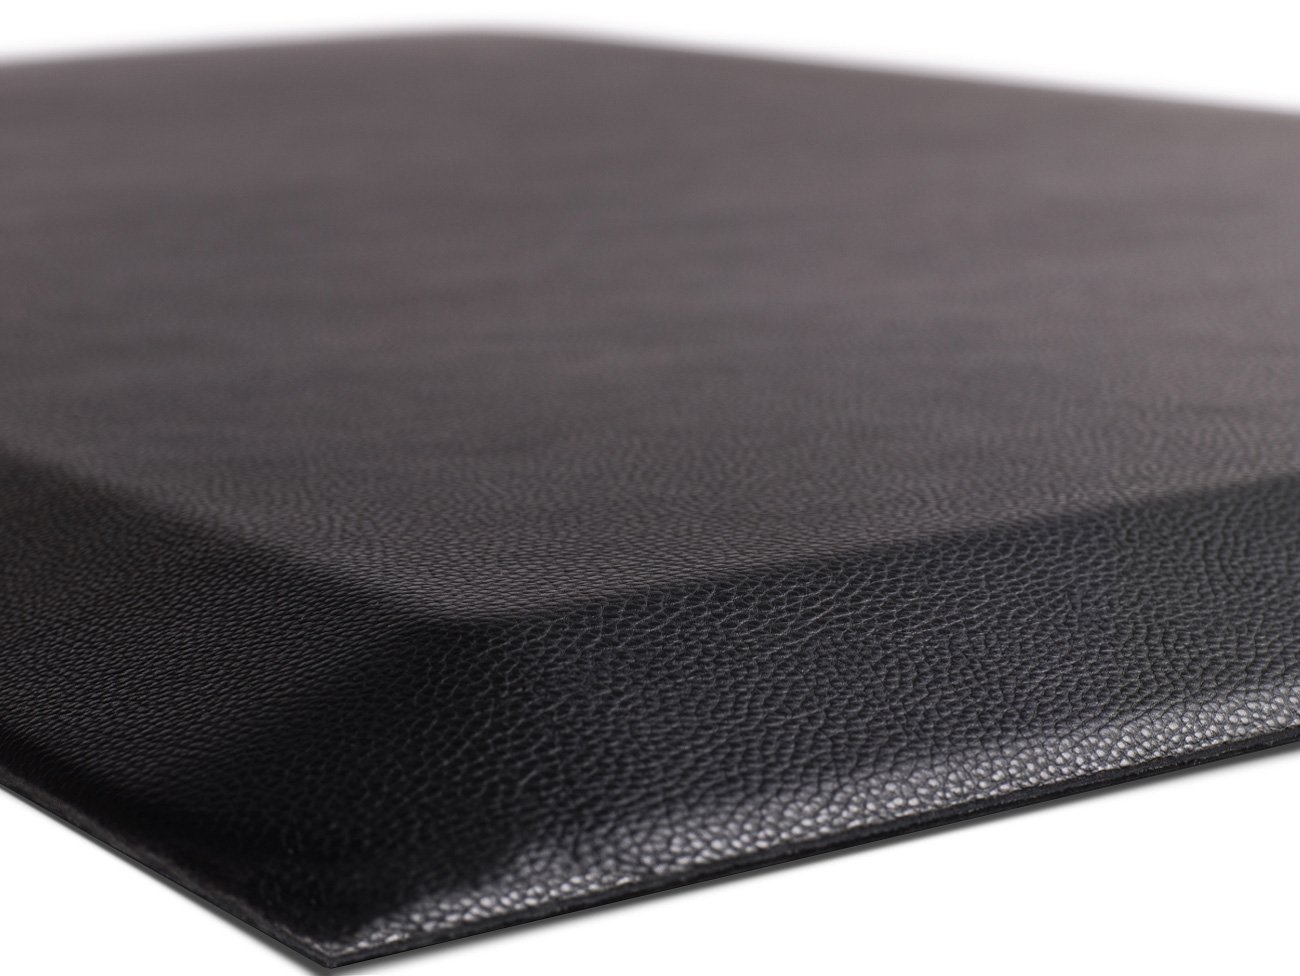 The Original 3/4'' GORILLA GRIP (R) Premium Anti-Fatigue Comfort Mat, Perfect for Kitchen and Office Standing Desk, Ergonomically Engineered, 6 Colors and 3 Sizes, Non-Toxic, 70x24 inches (Black) by Gorilla Grip